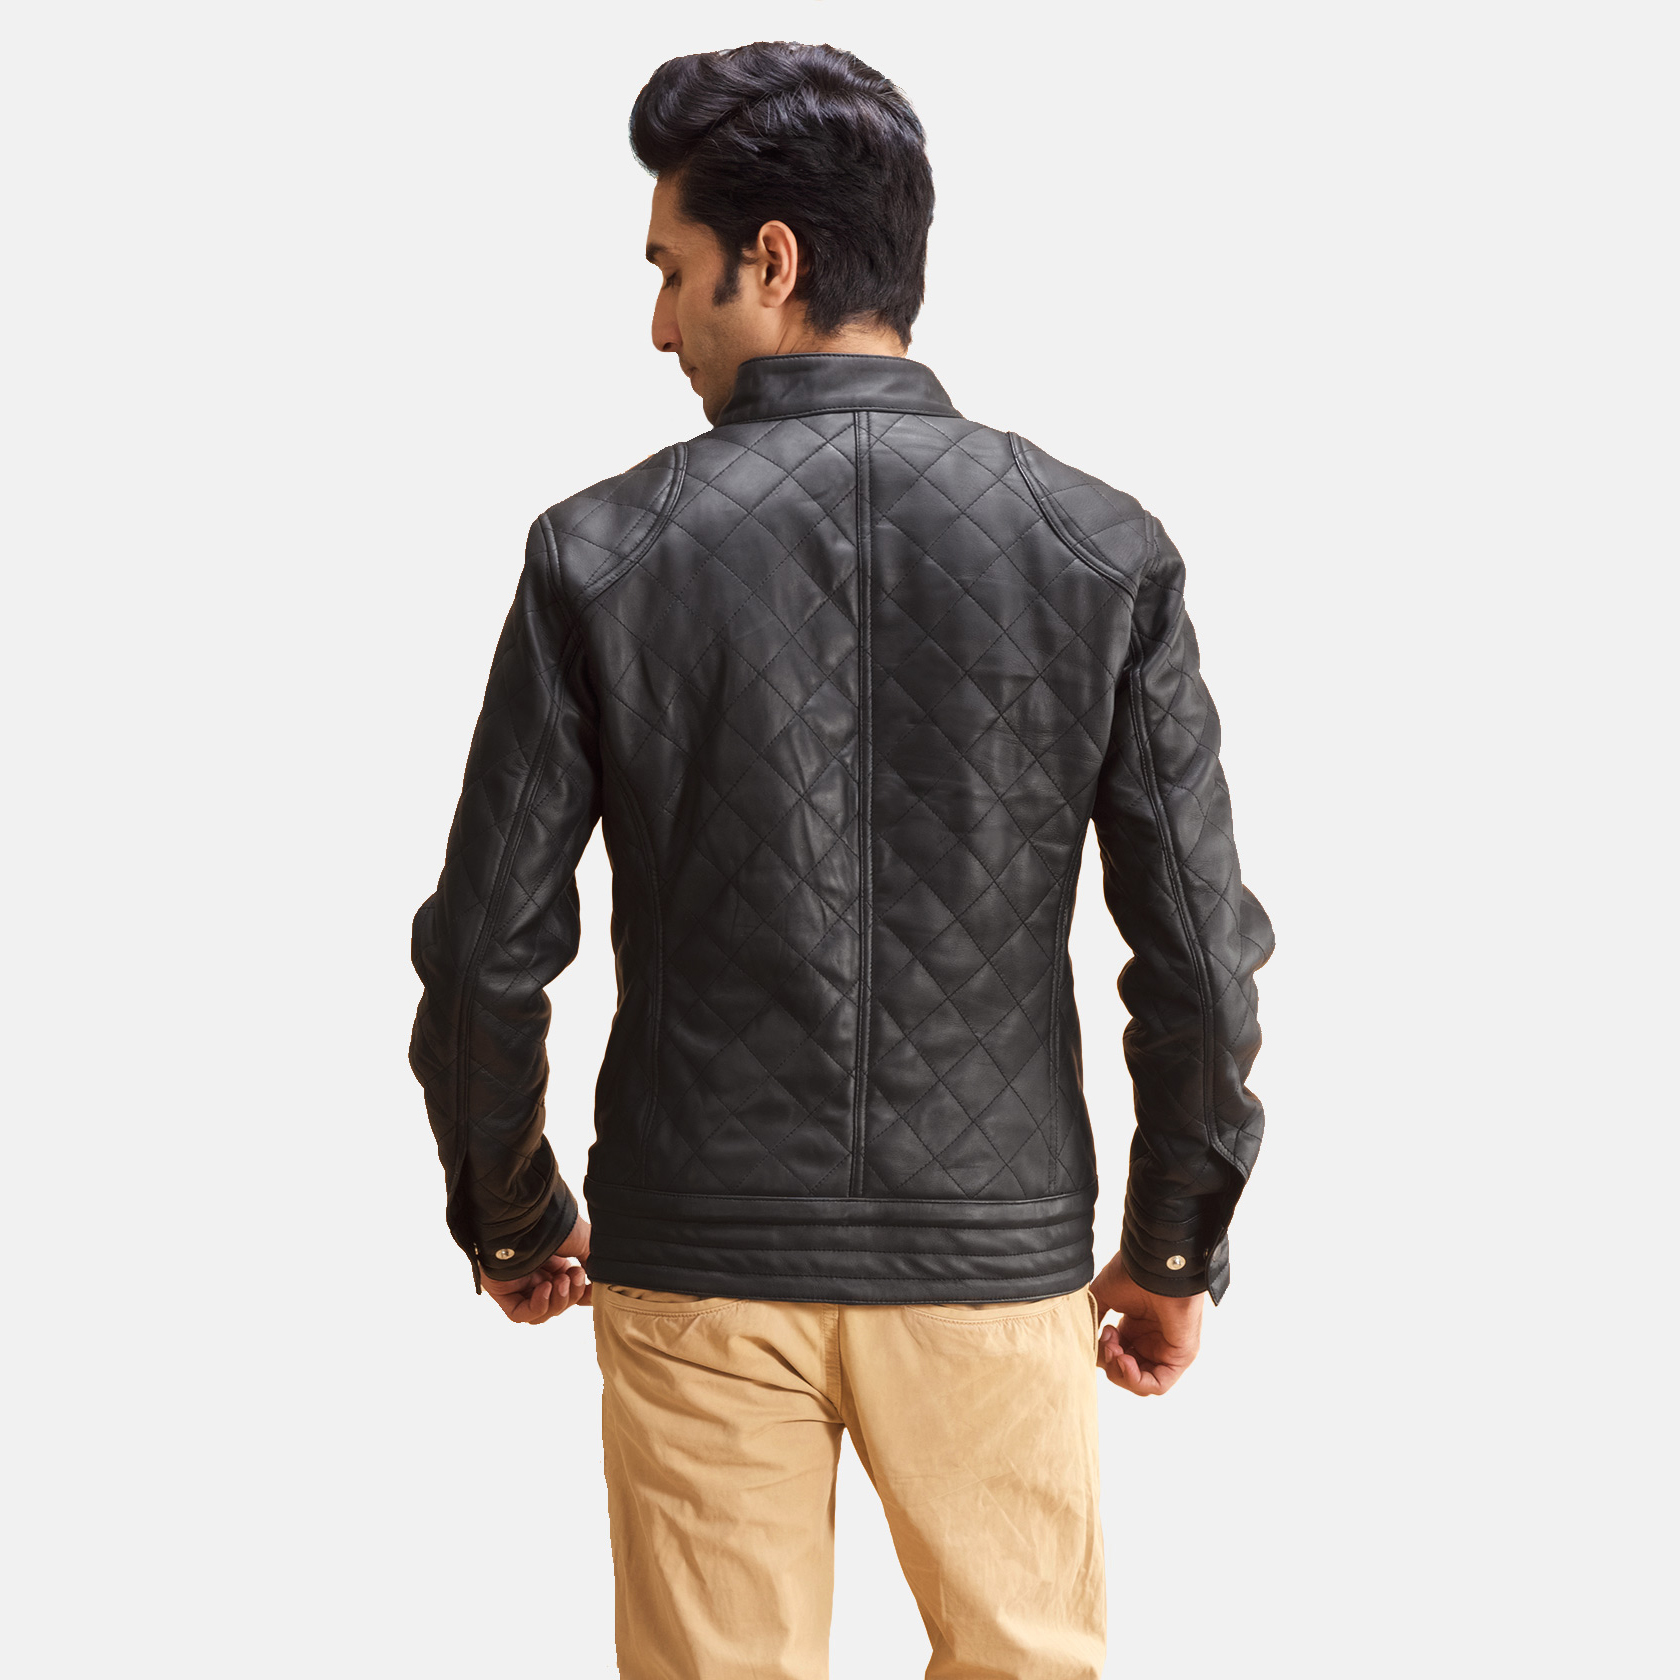 Men's Henry Quilted Black Leather Jacket 4